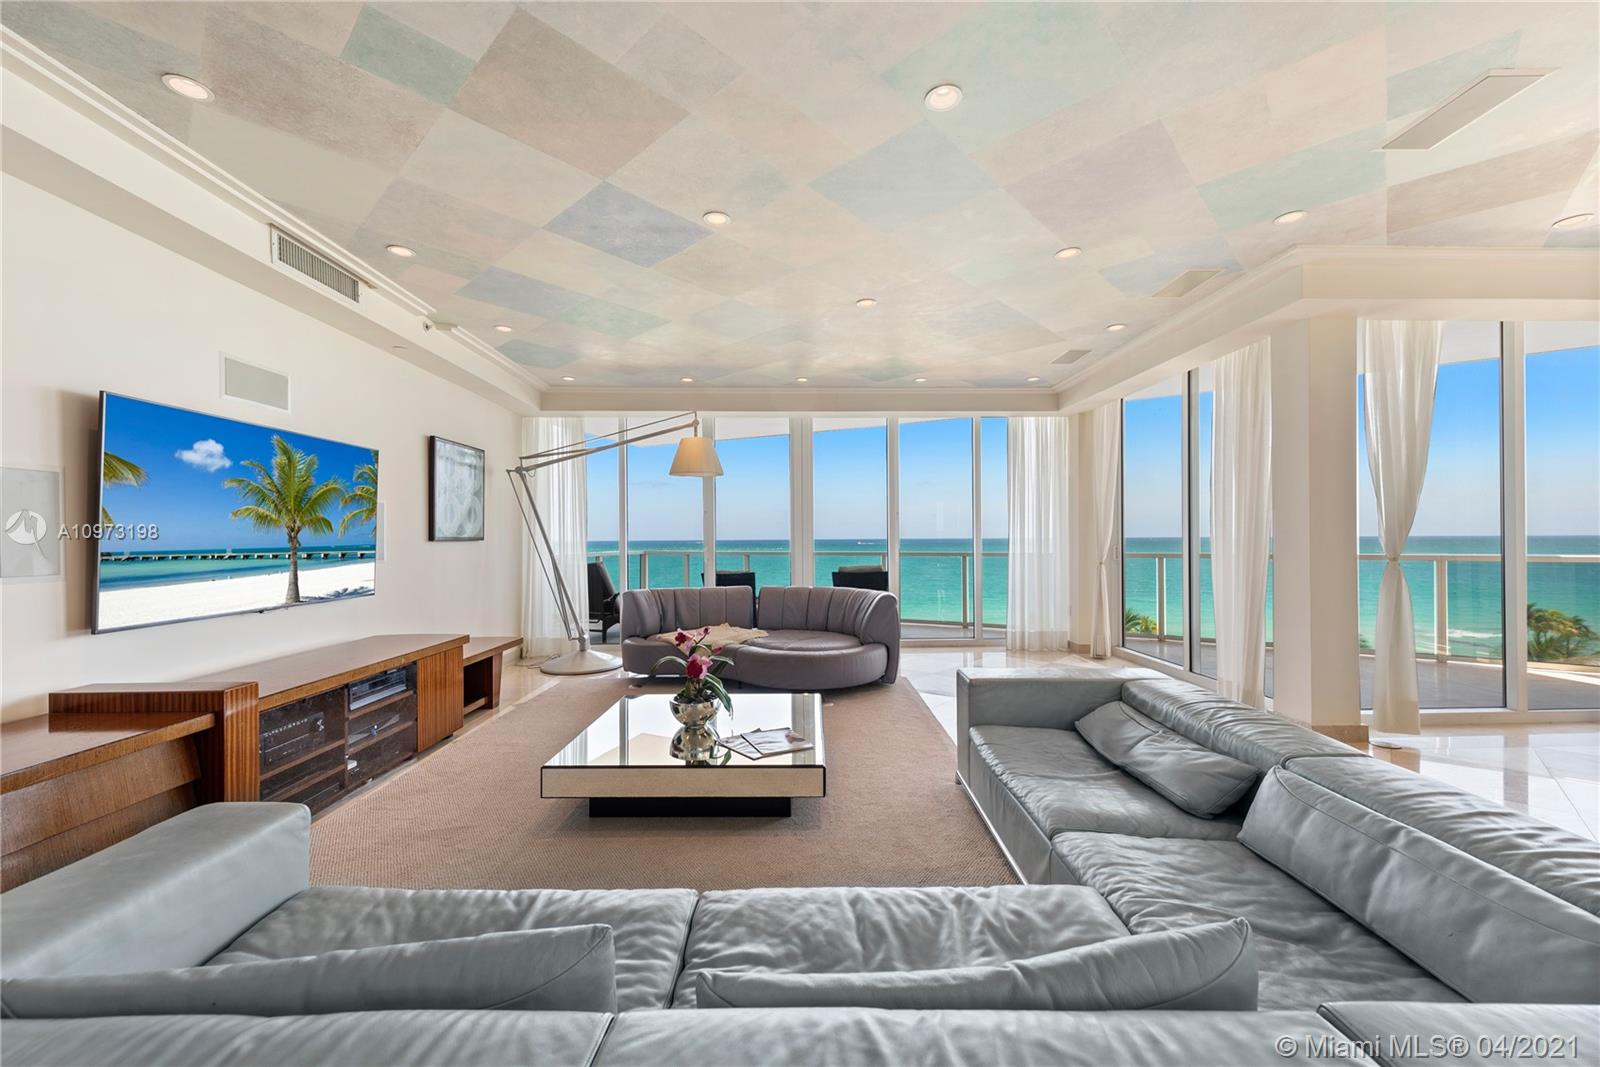 With over 6,000 sq ft, 6 bedrooms, 2 staff's quarters, 9.5 baths, this property represents a rare opportunity ideal for a large family. Special features include a massive oceanfront master suite with his and her bathrooms and large walk in closets, VIP guest suite, an expansive oceanfront living room with sunrise views, massive Poggenpohl kitchen with breakfast area, large bay facing club room with separate chef kitchen/bar and sunset views. Located in world renowned Bal Harbour, directly on the beach, the Bellini is a luxurious boutique full service building with private restaurant, gym and spa. Contact the listing agent to show with 24 hour notice.